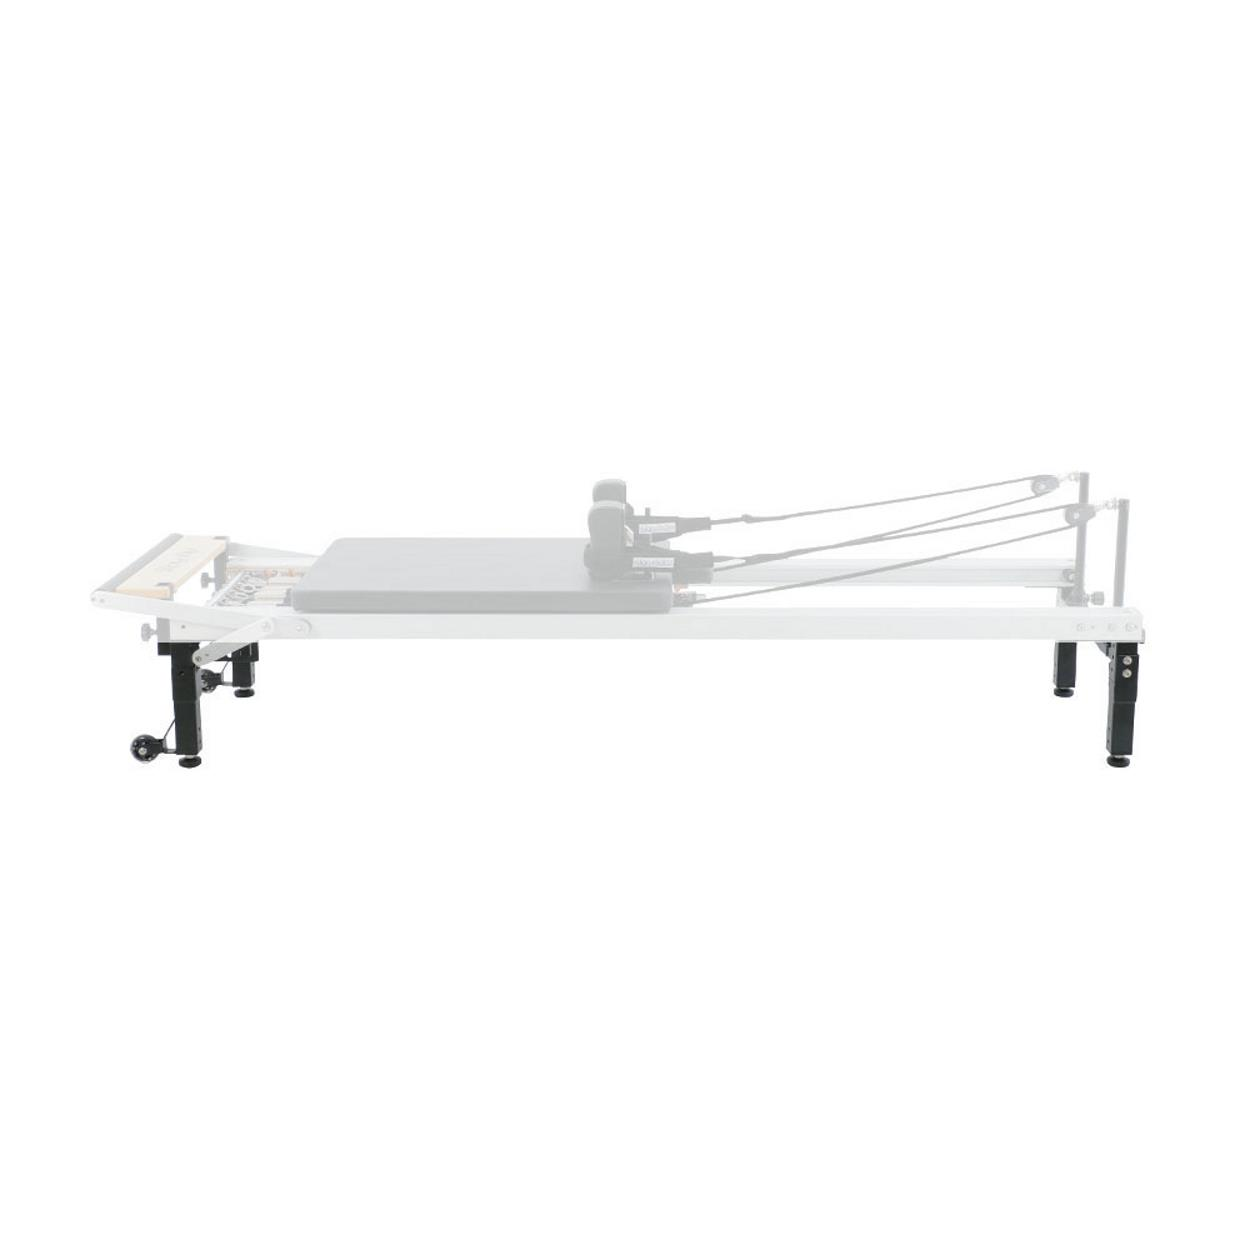 Align-Pilates Leg Extensions for C* Series Pro Pilates Reformer